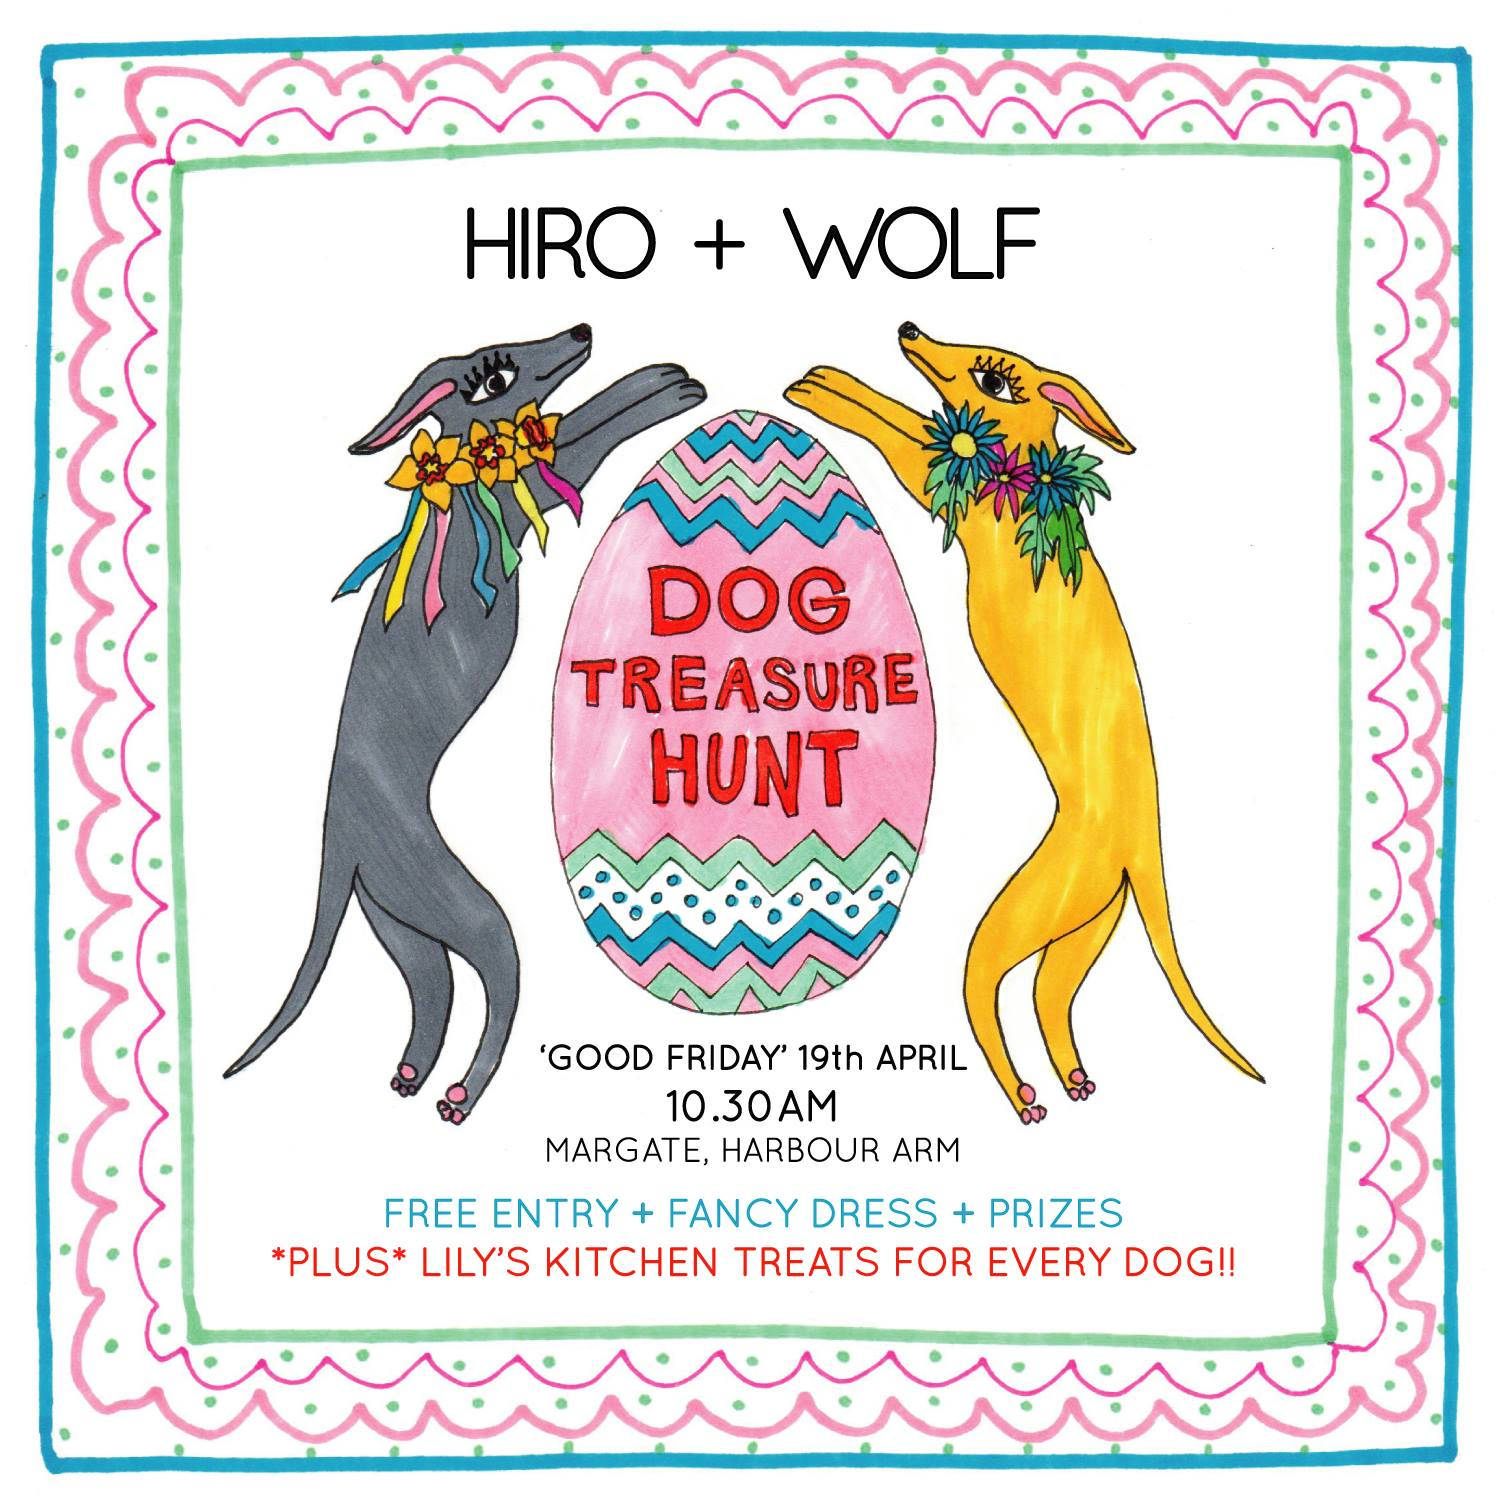 Poster of Hiro and Wolf easter treasure hunt